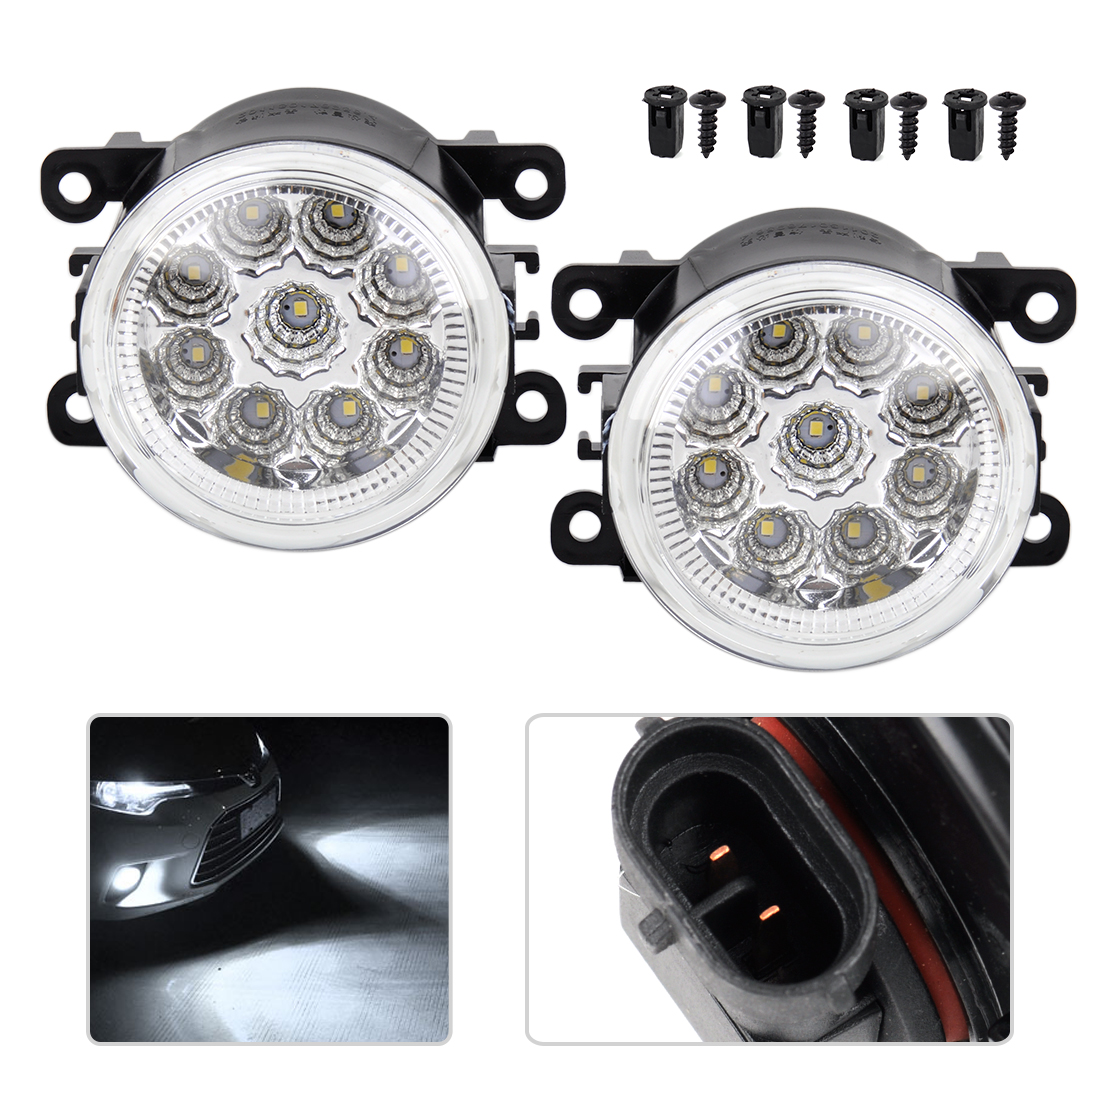 beler 1Pair 9 LED Front Fog Lamps DRL Daytime Running Driving Lights for Infiniti G37 2010 Nissan Altima Maxima Versa 2012-2014 led front fog lights for opel astra g saloon f69  1998 09 2009 car styling round bumper drl daytime running driving fog lamps